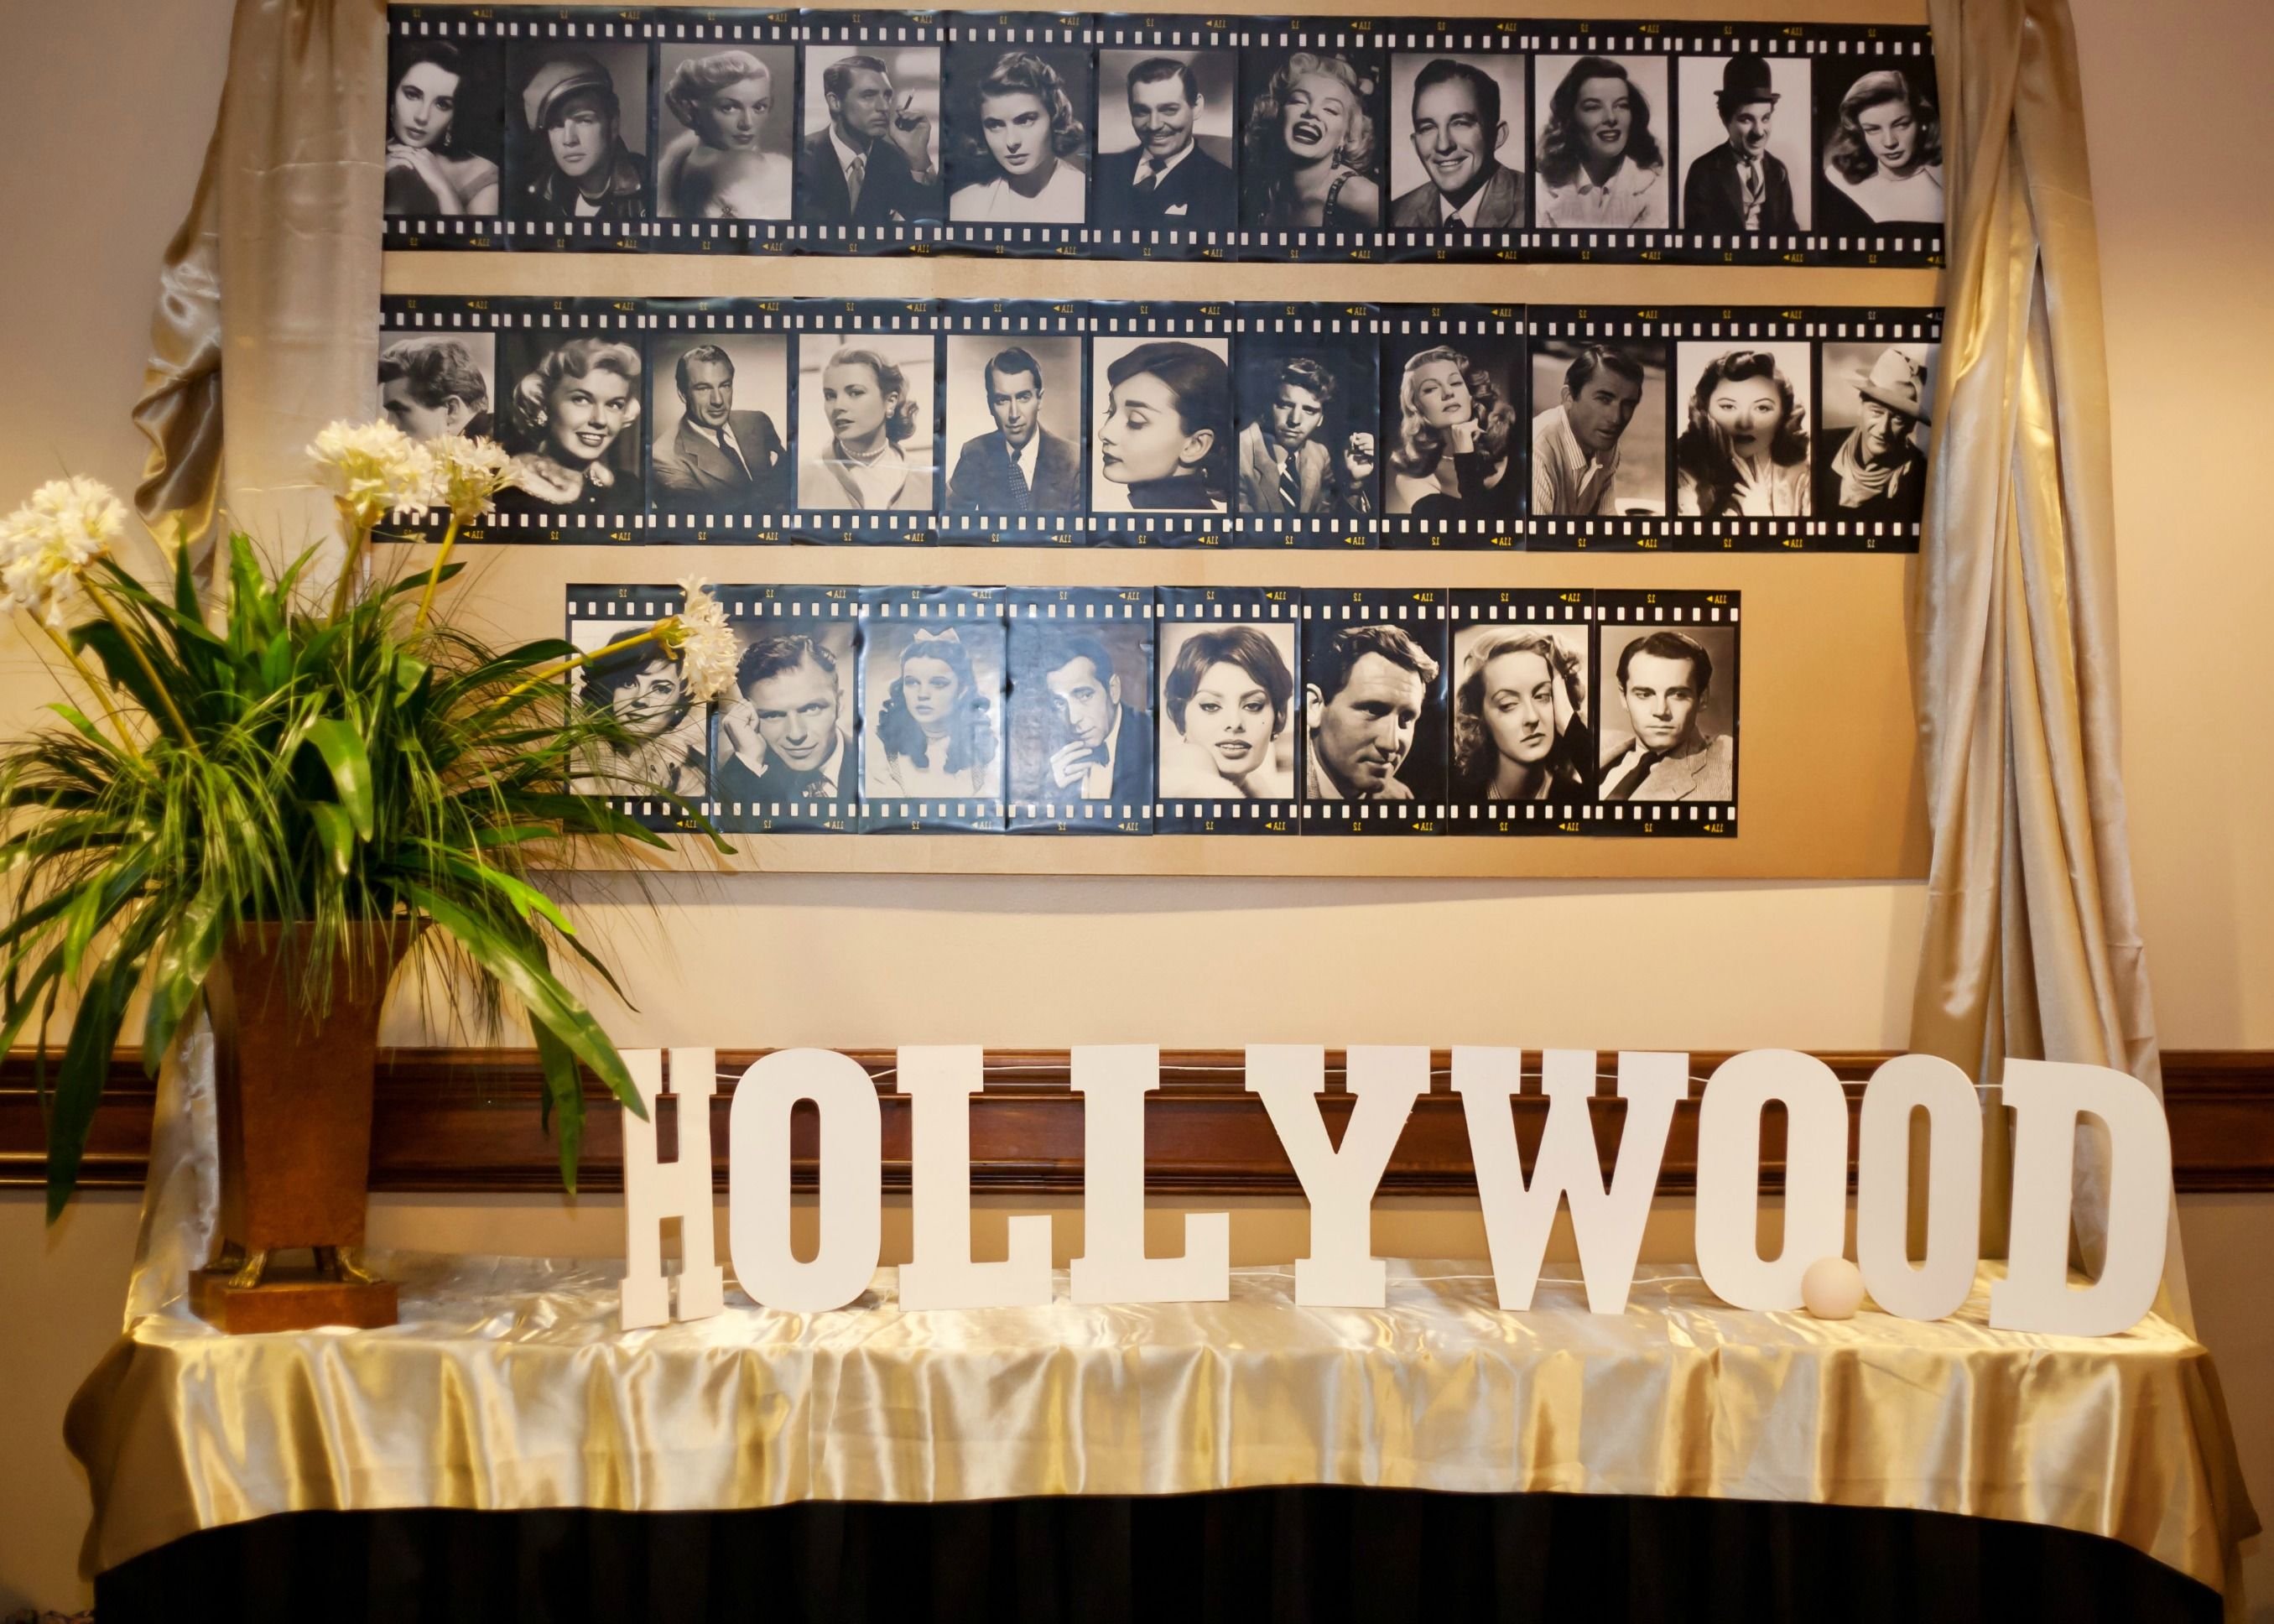 40th Hollywood Glam Party - Birthday Party Ideas & Themes |Old Hollywood Themed Birthday Party